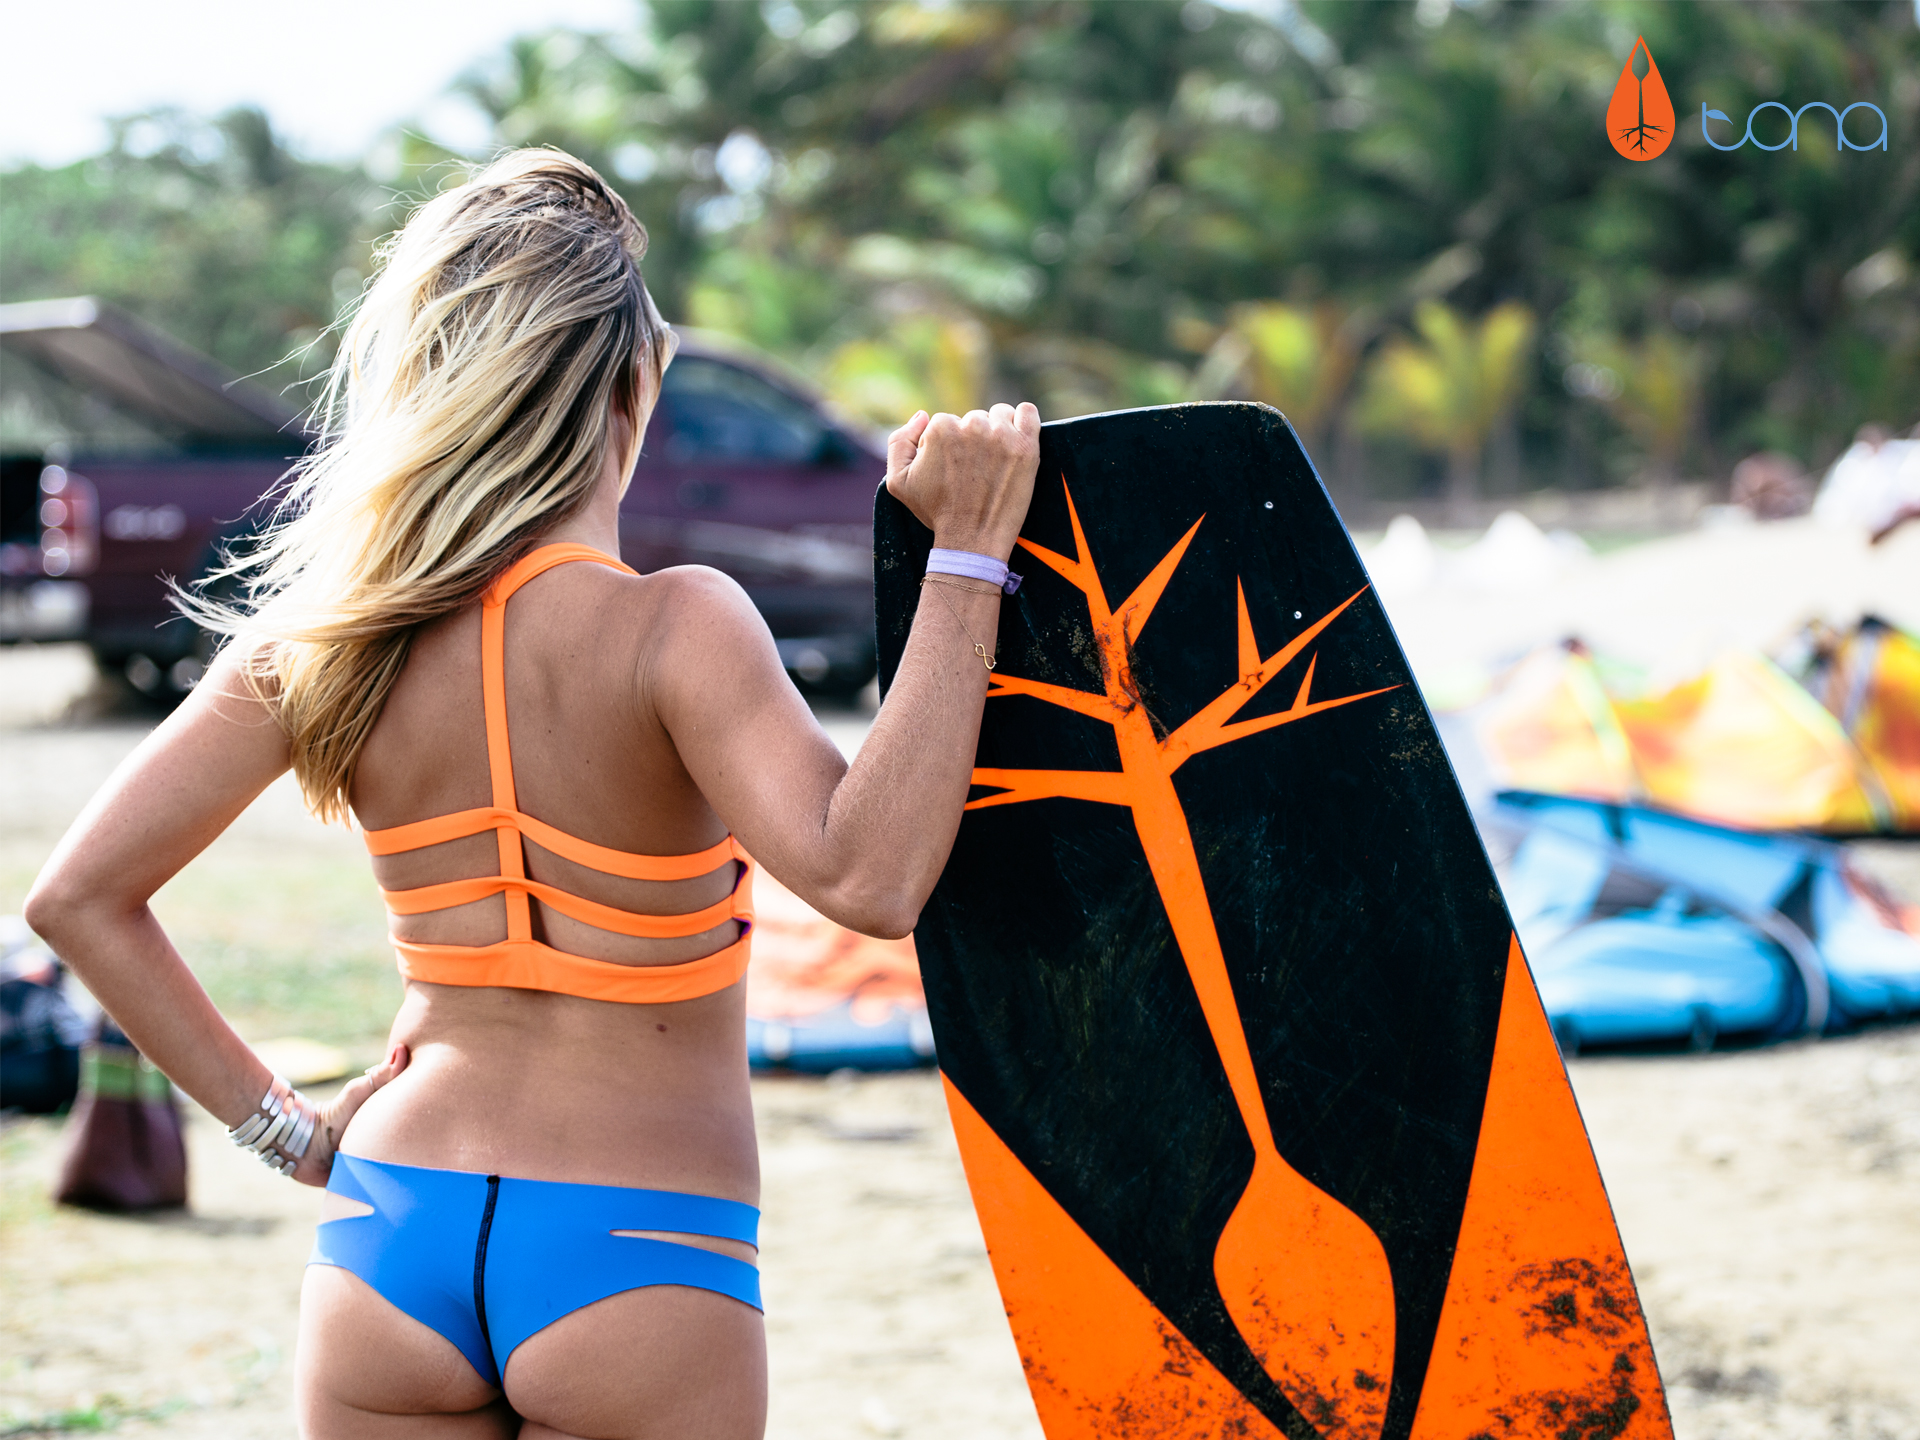 kitesurf wallpaper image - Susi Mai getting into the flow of Tona Boards posing with kiteboard - in resolution: Standard 4:3 1920 X 1440